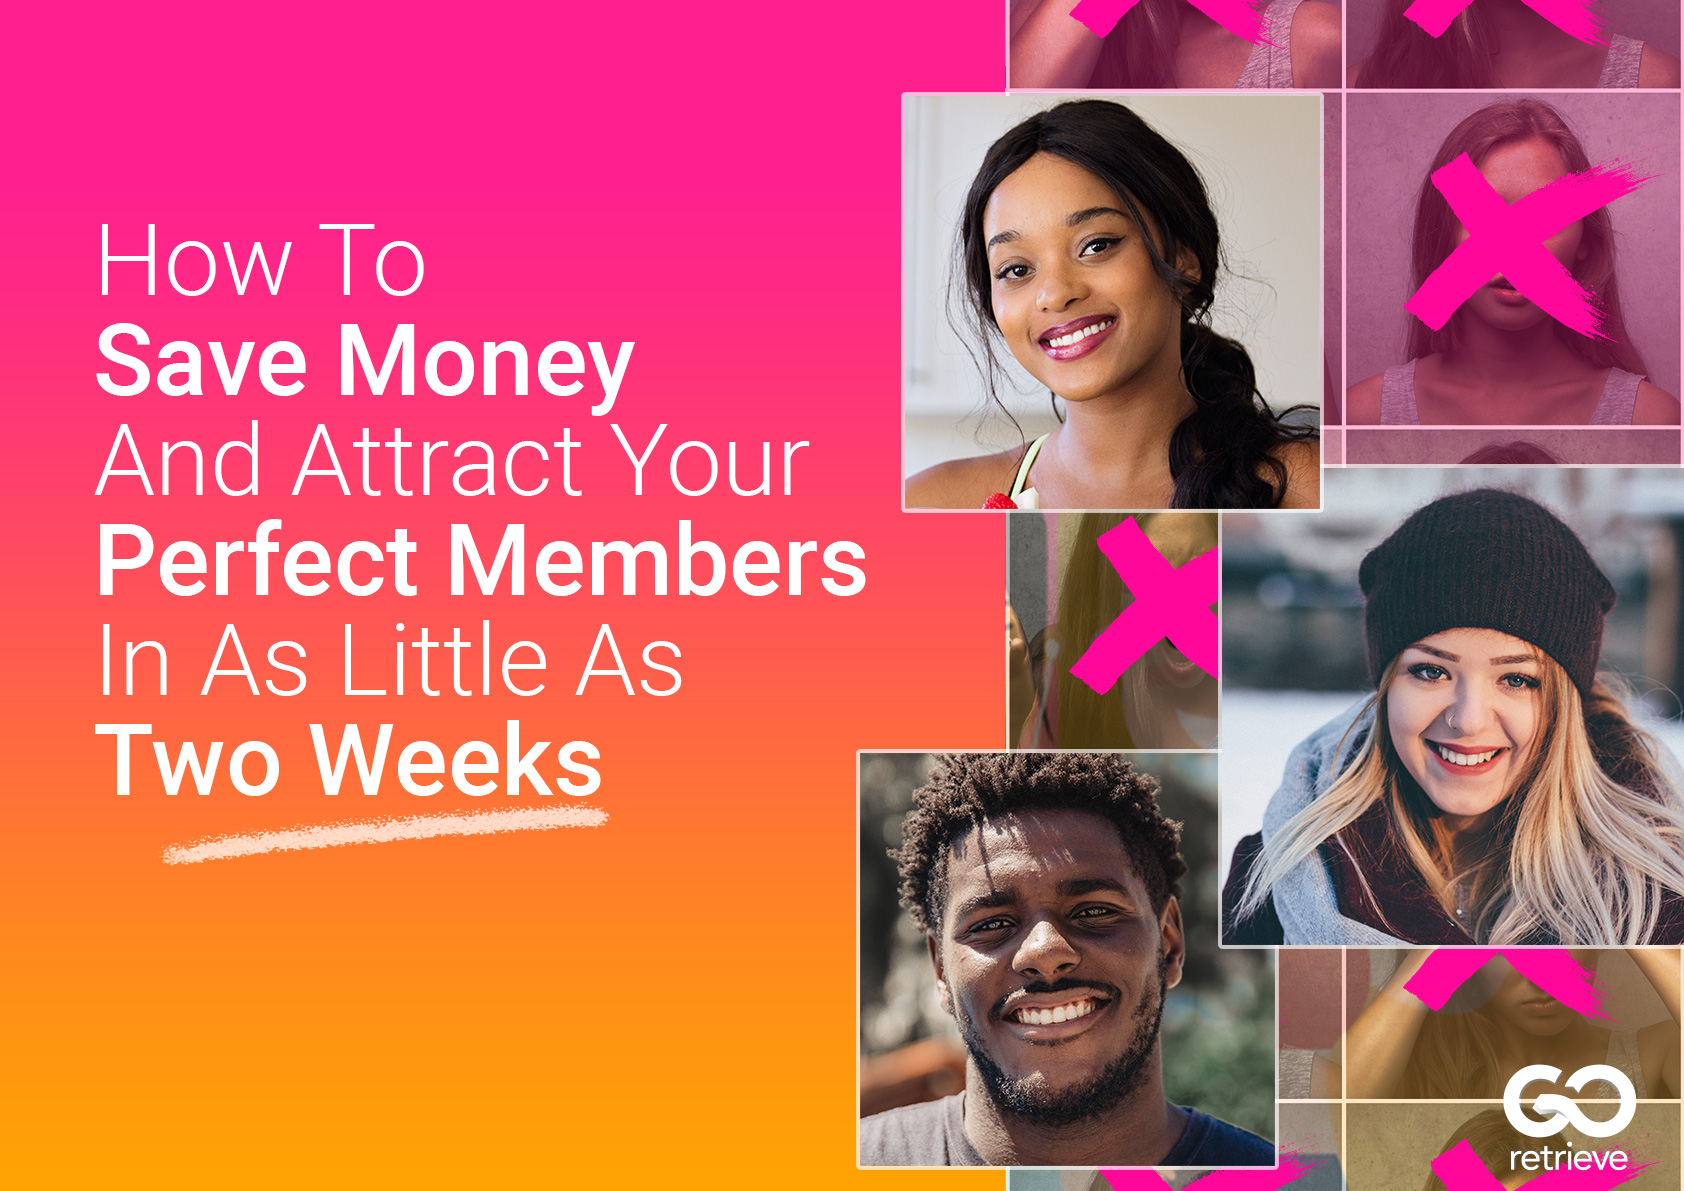 How_To_Save_Money_And_Attract_Your_Perfect_Members_In_As_Little_As_Two Weeks